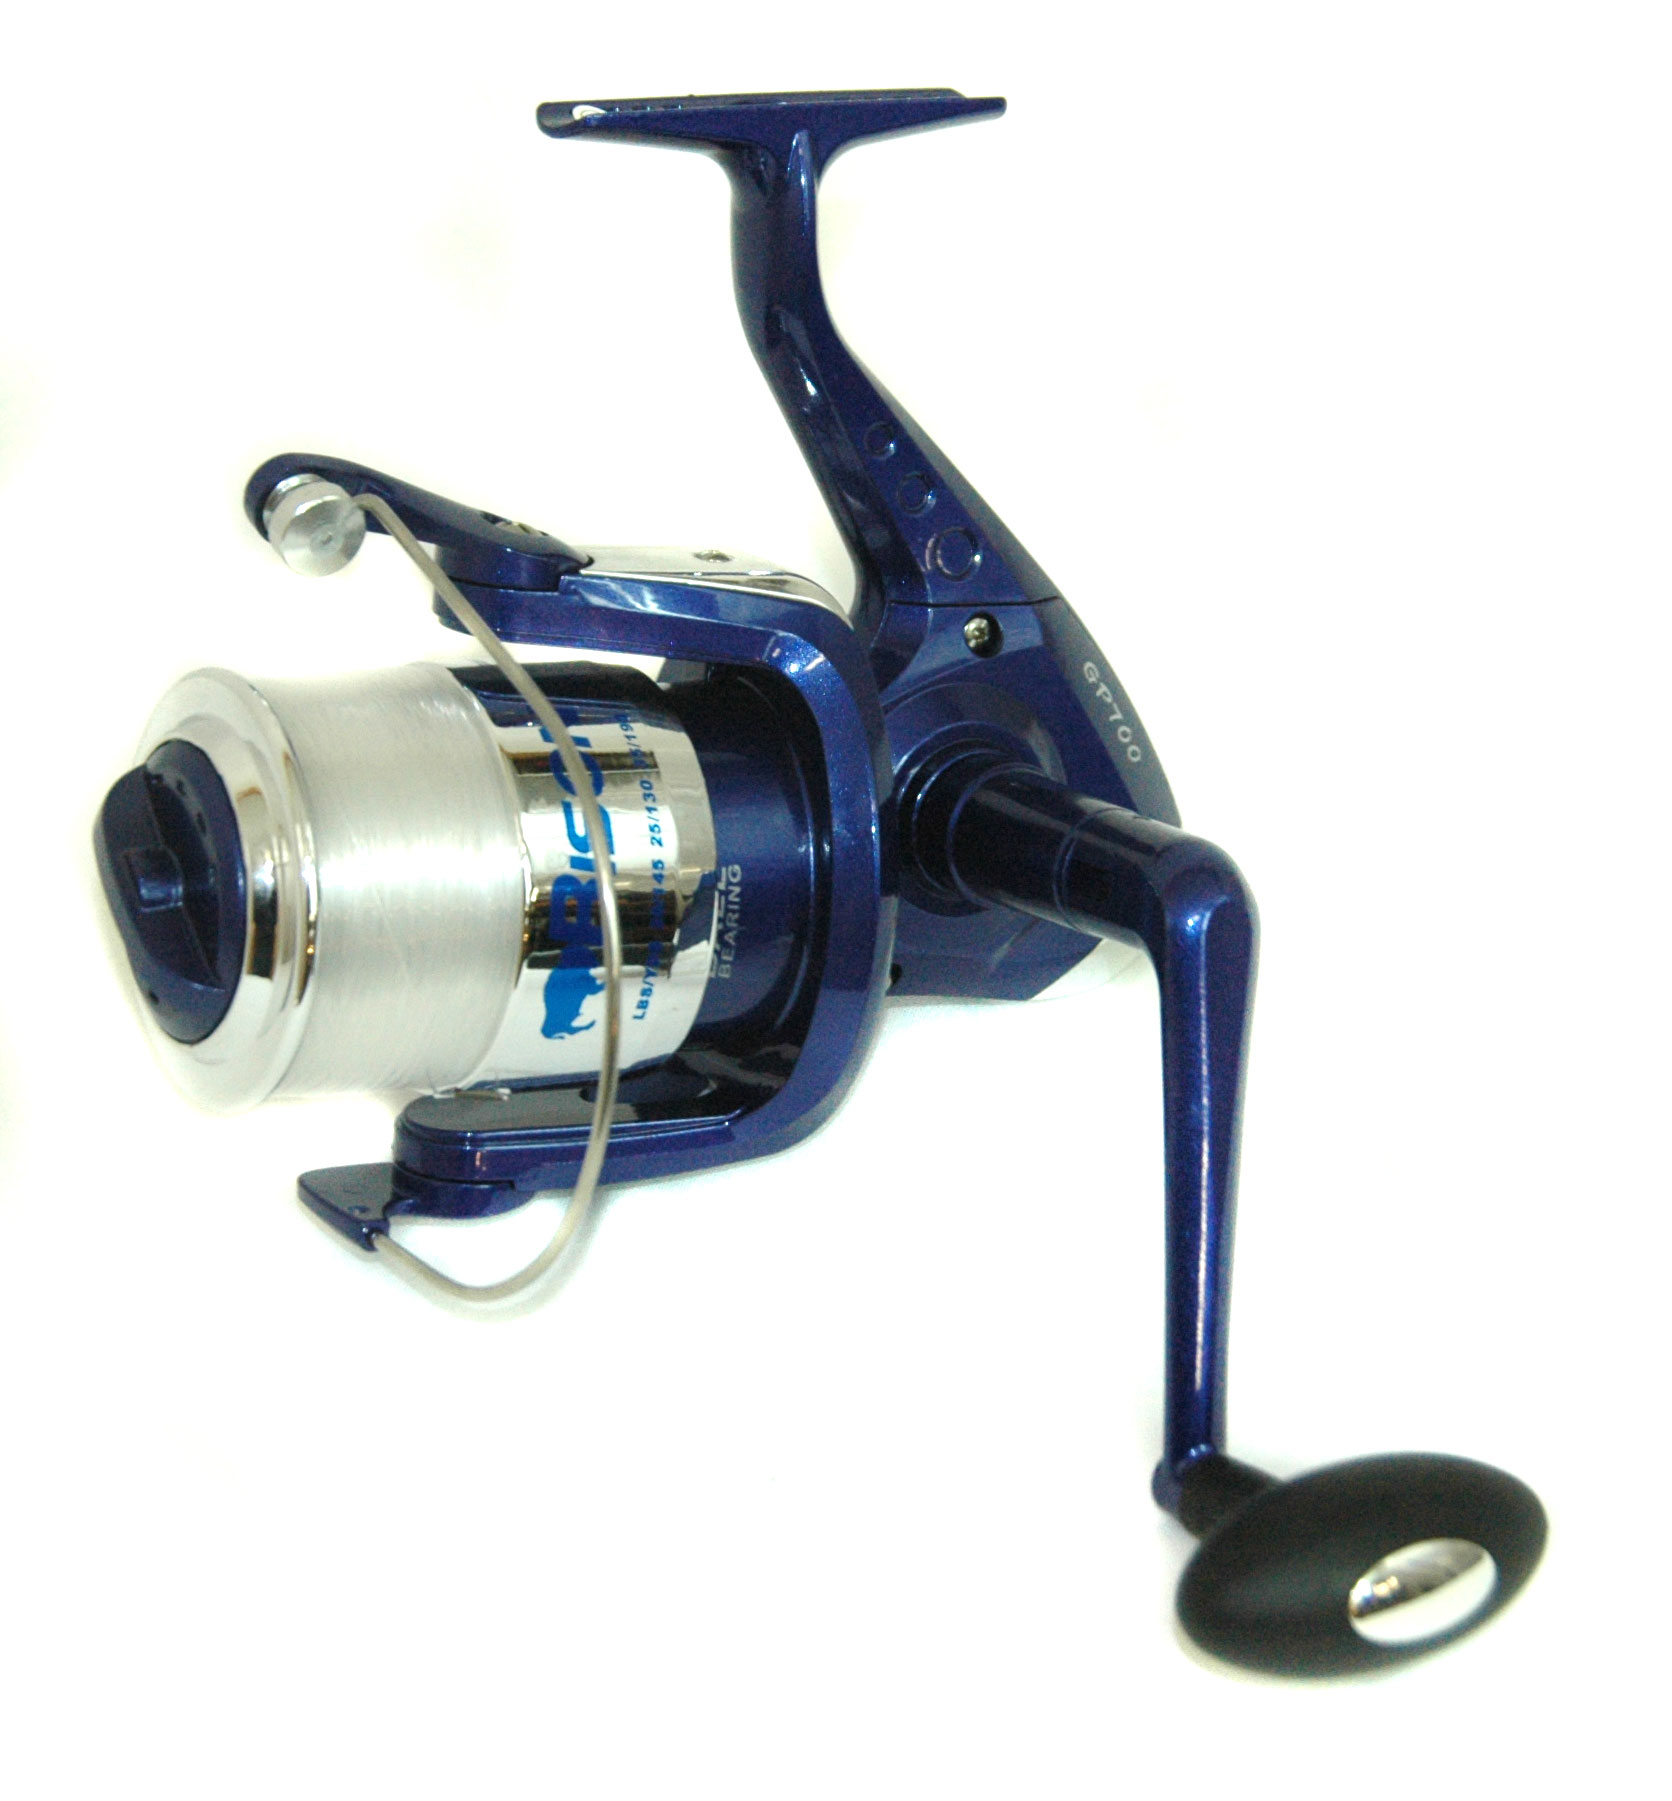 Sea fishing kit 13 39 beachcaster surf rod 7000 surf reel for Surf fishing reels